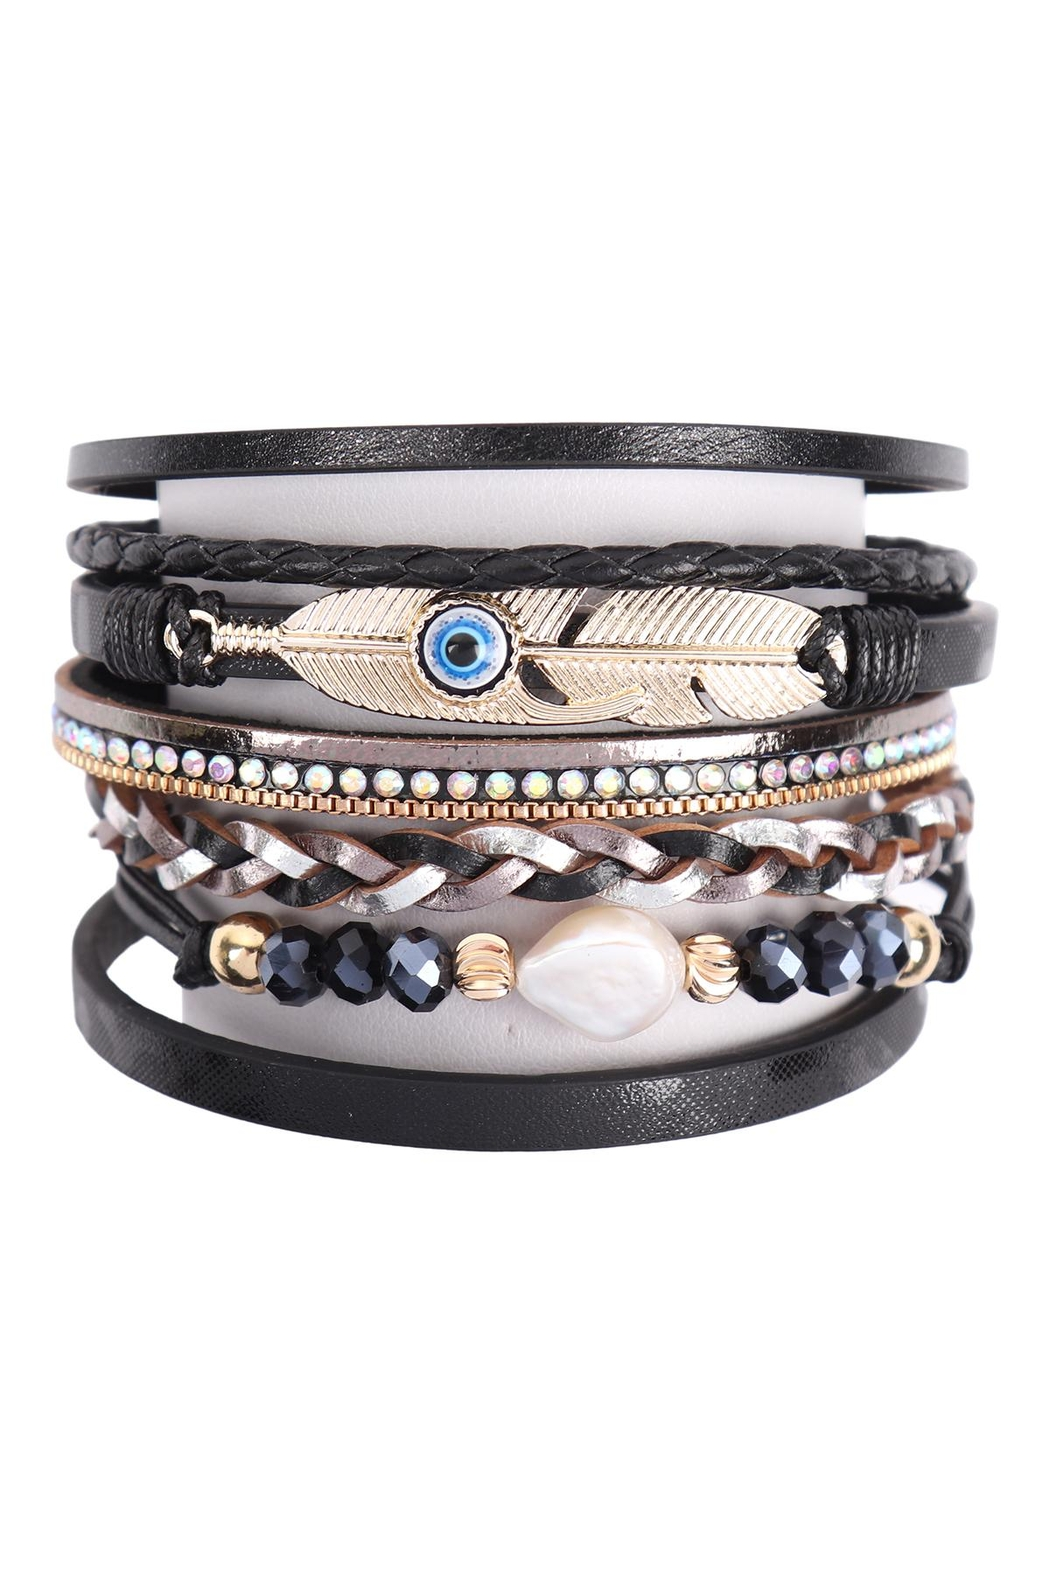 Riah Fashion Leather-Bracelet-With-Feather-And-Evil-Eye-Charm - Front Cropped Image